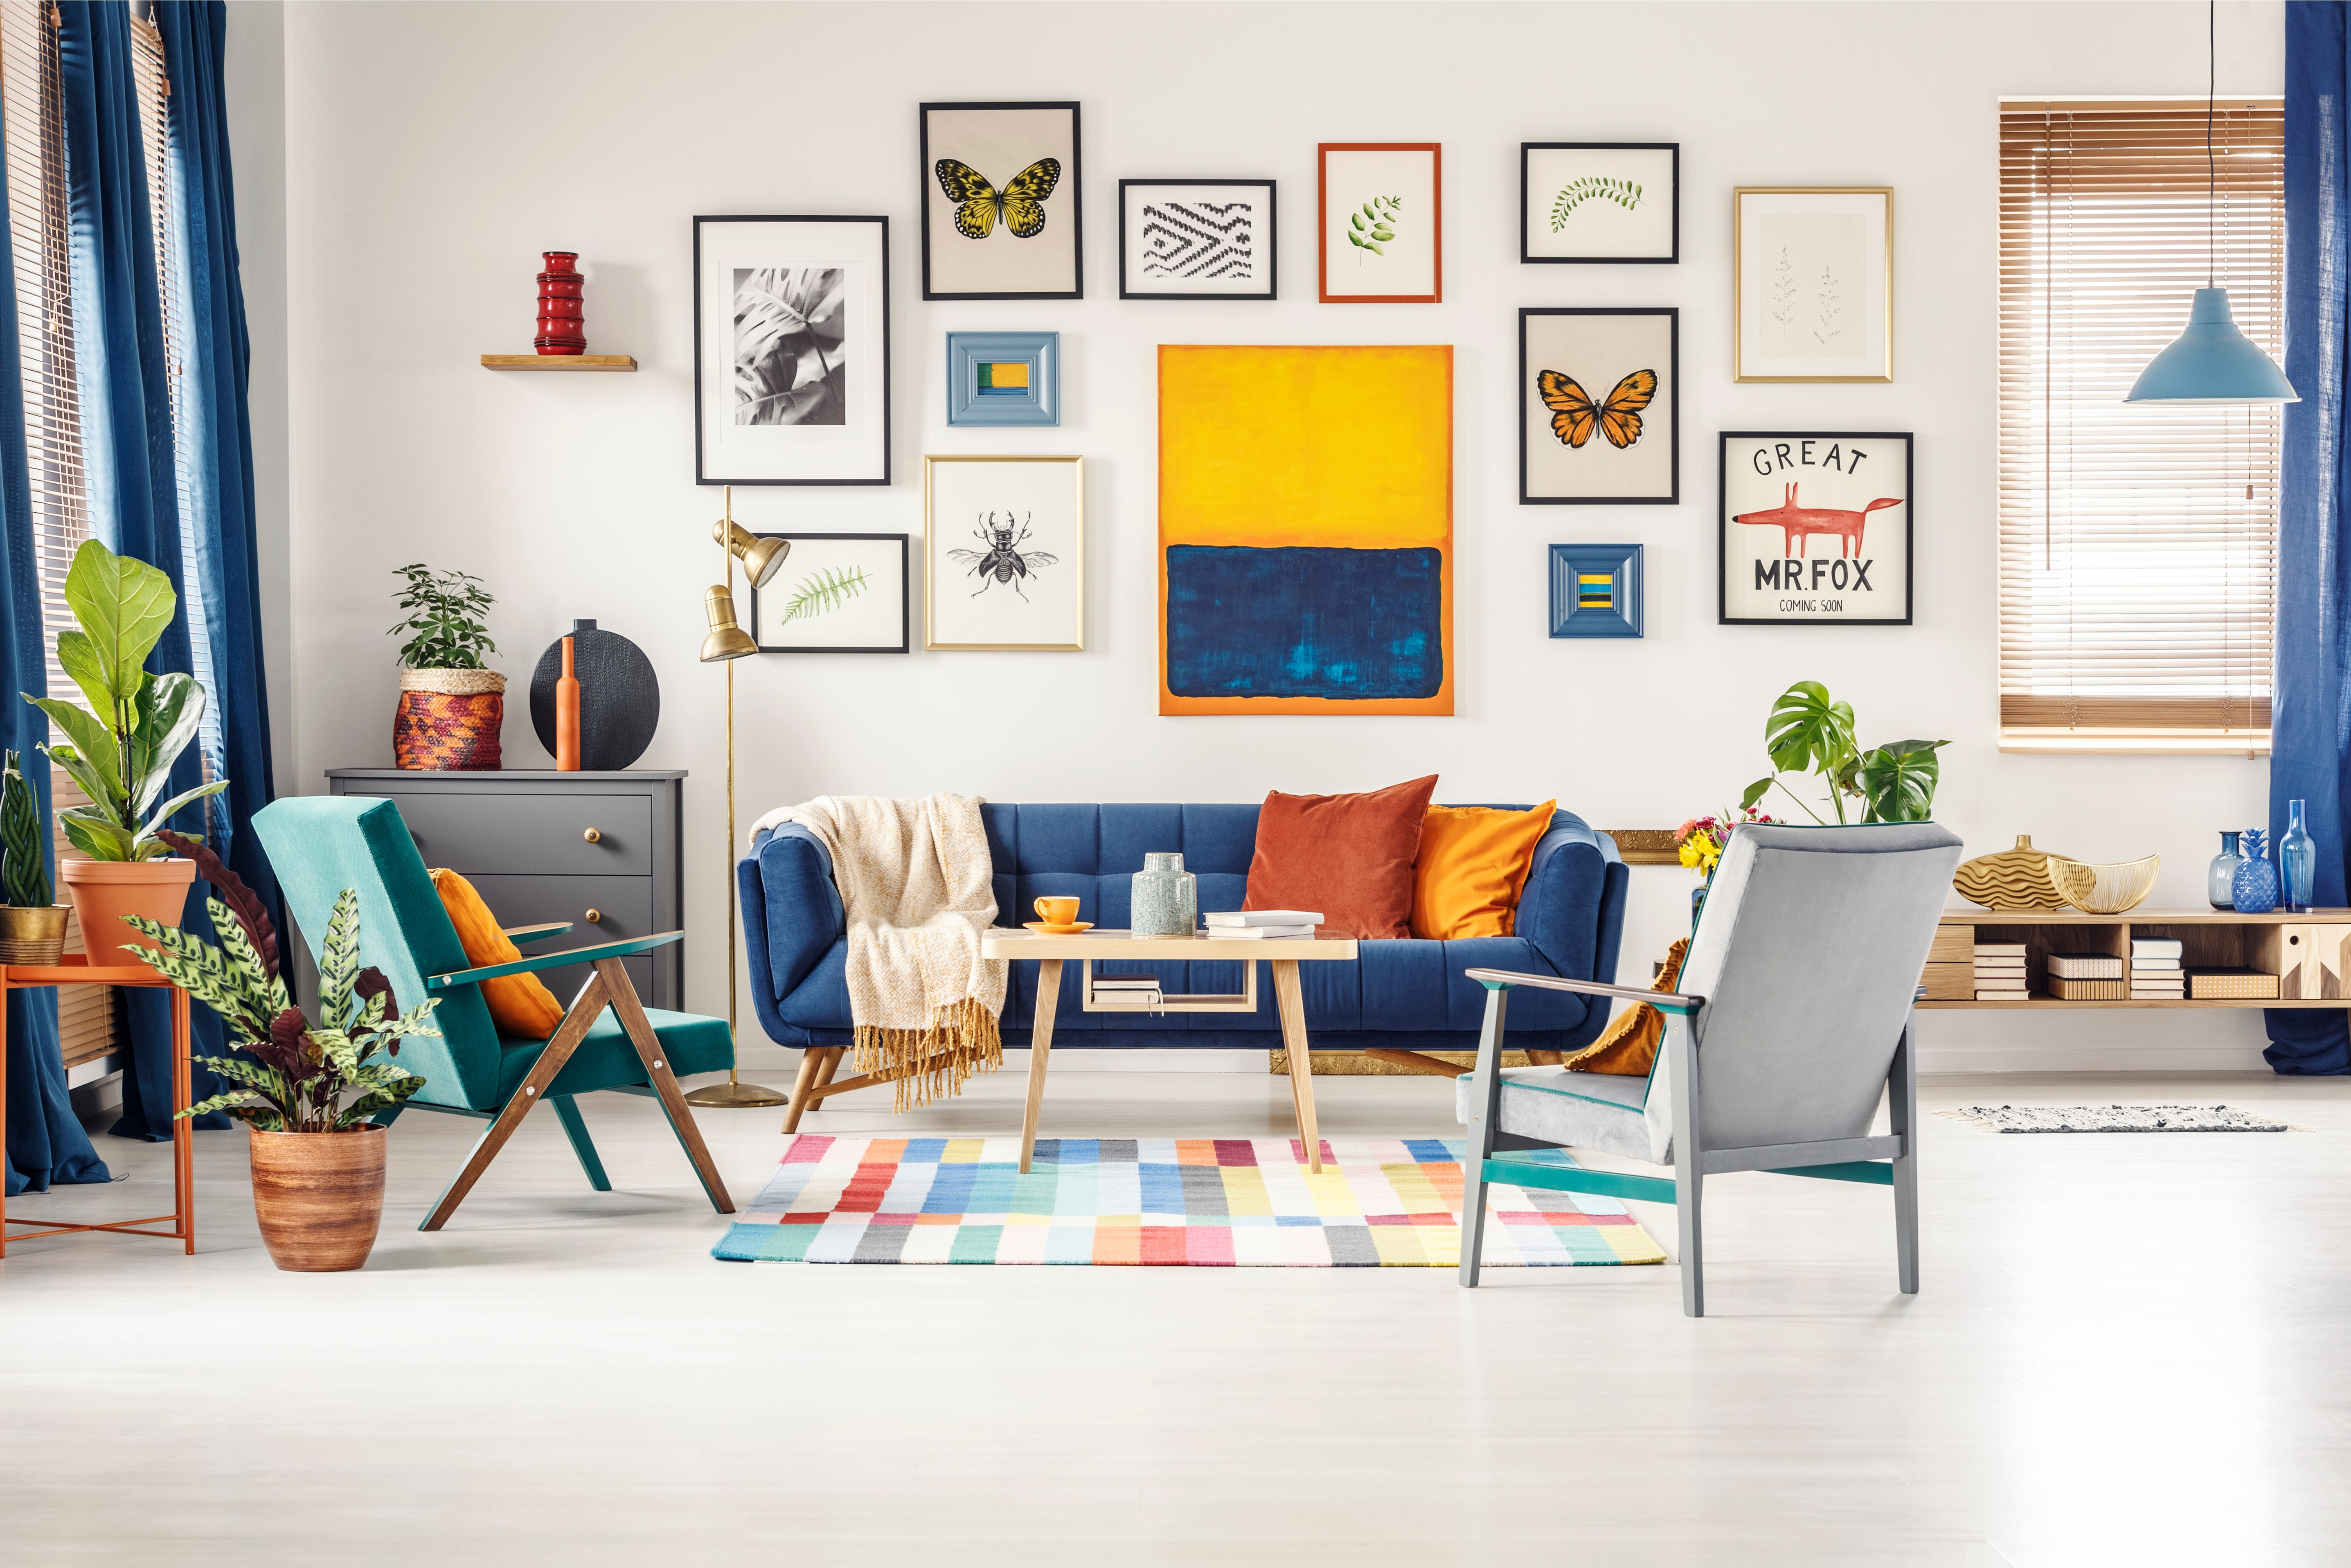 Interior Design Trends To Watch Out For In 2019